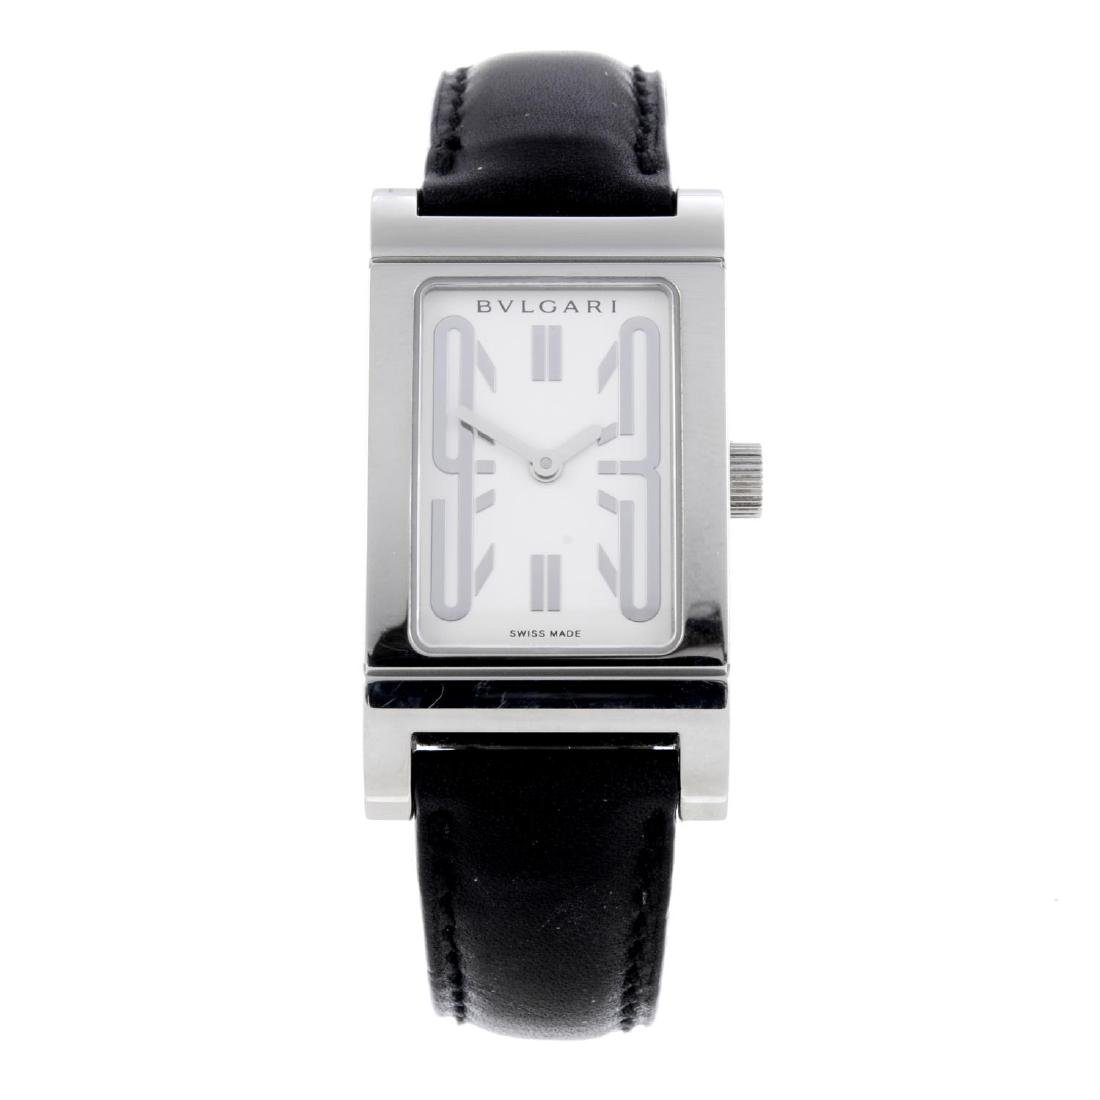 BULGARI - a lady's Rettangolo wrist watch. Stainless